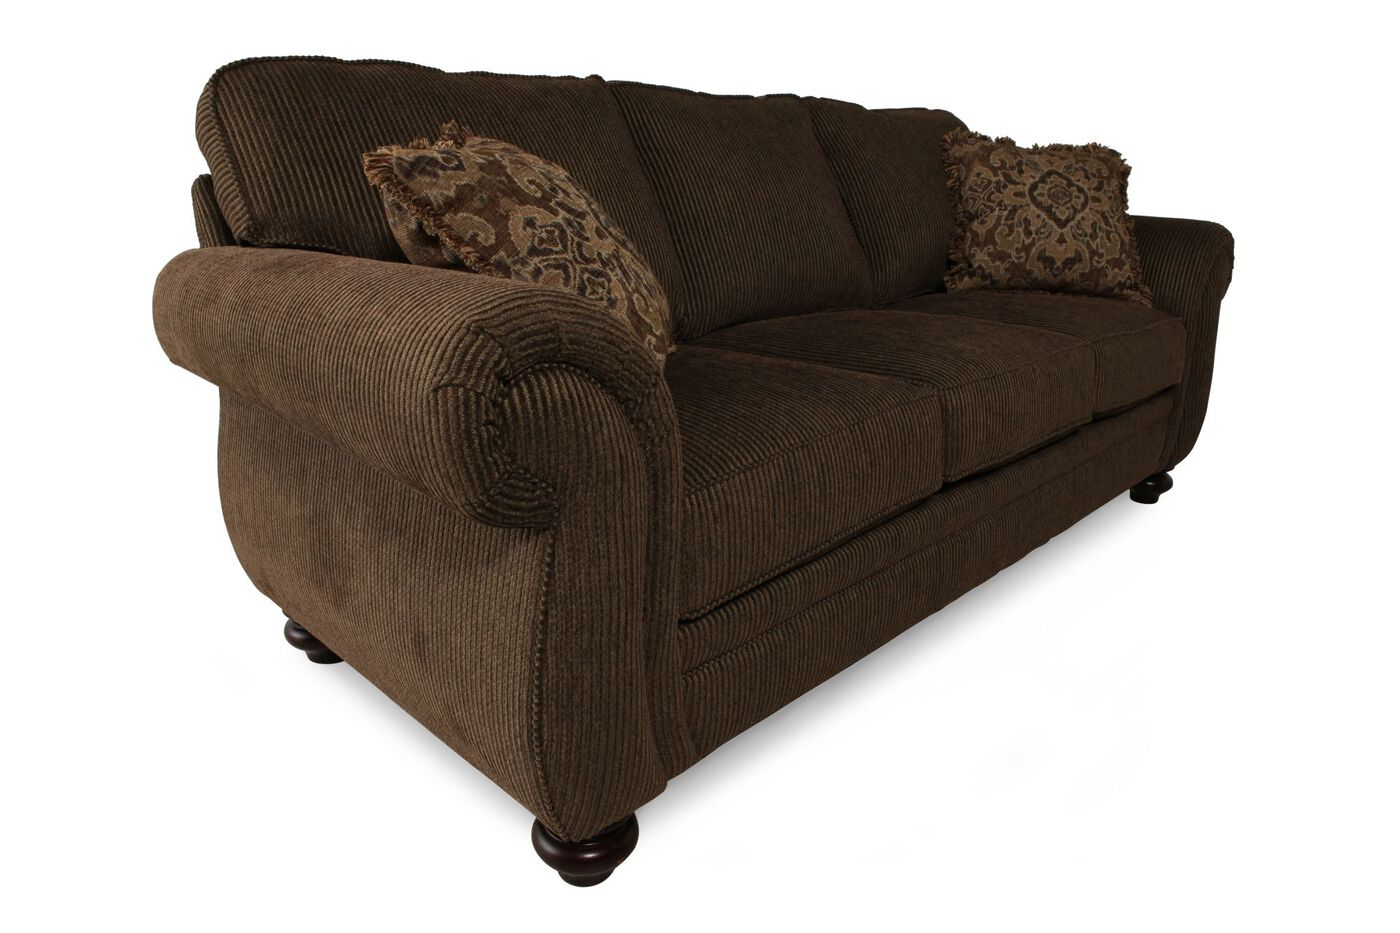 Broyhill Sofa Beds TheSofa